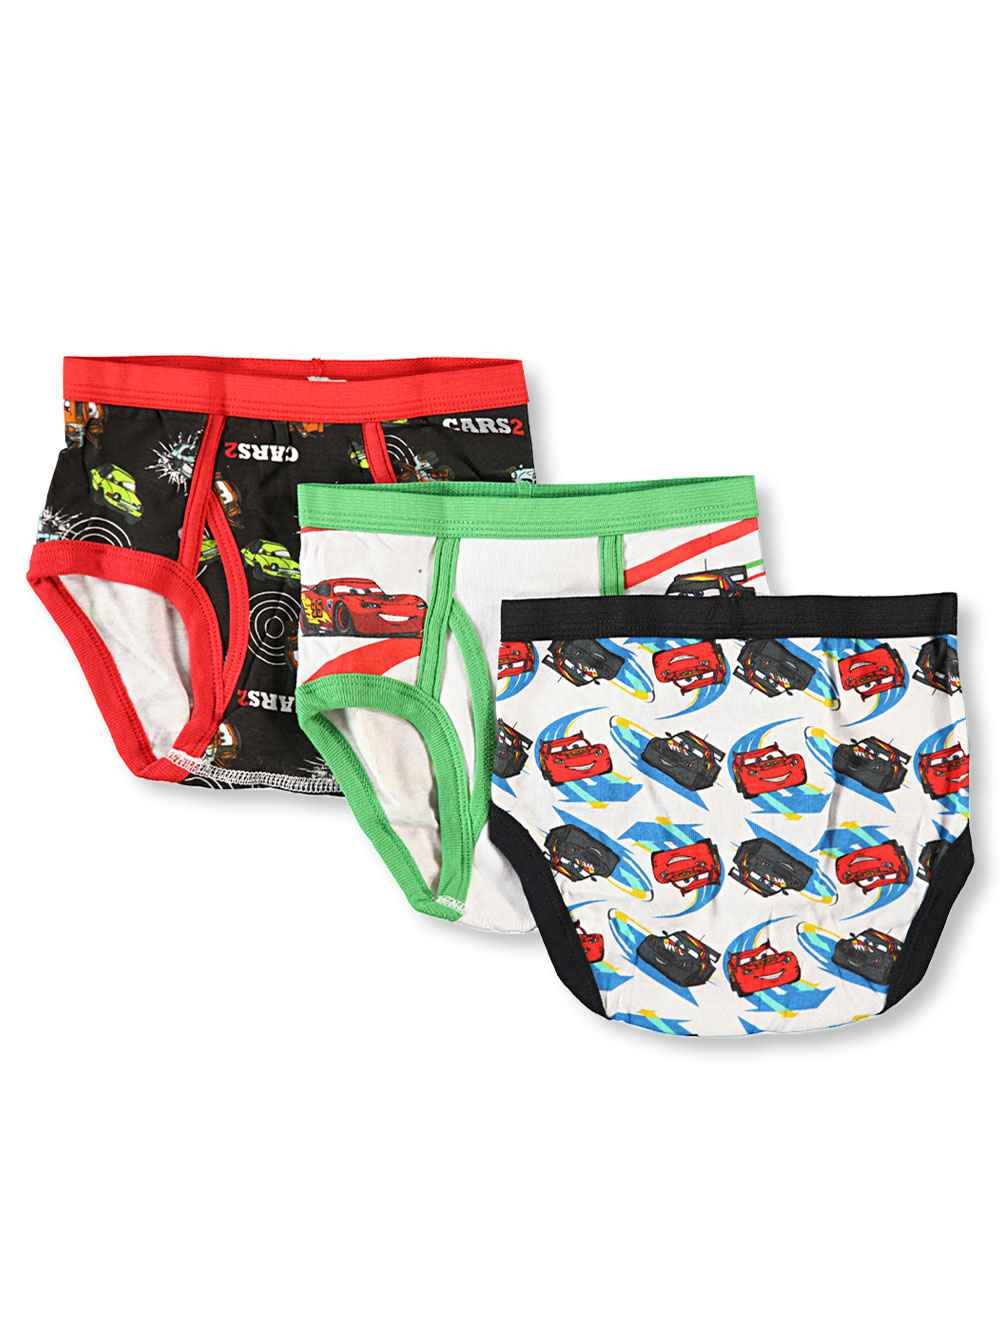 "Disney Cars ""Flipside"" 3-Pack Boys Briefs (Sizes 4 - 7) at Sears.com"